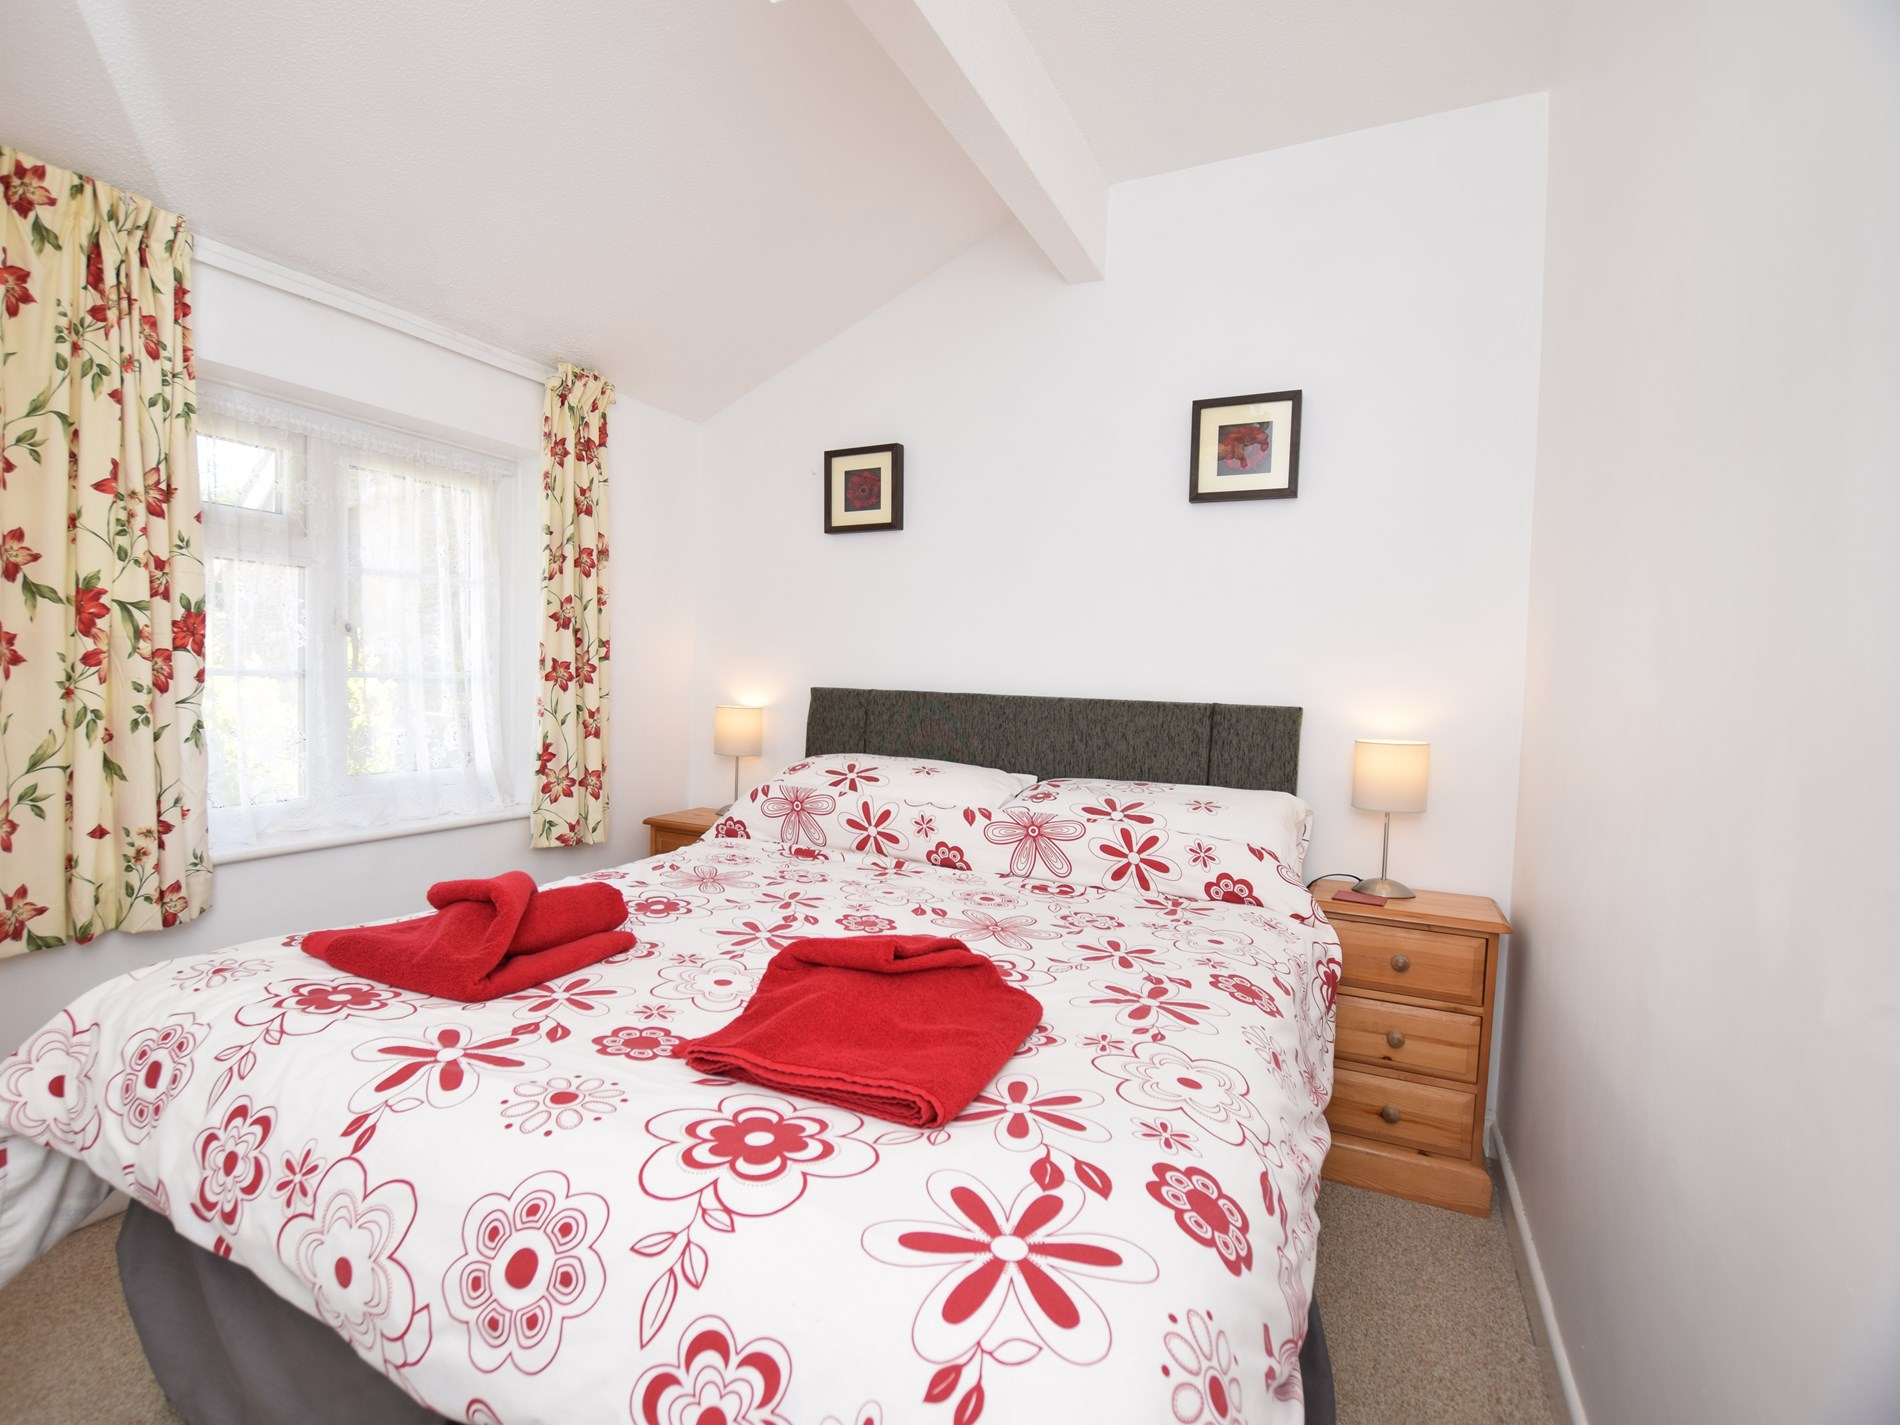 3 Bedroom Cottage in Bideford, Devon